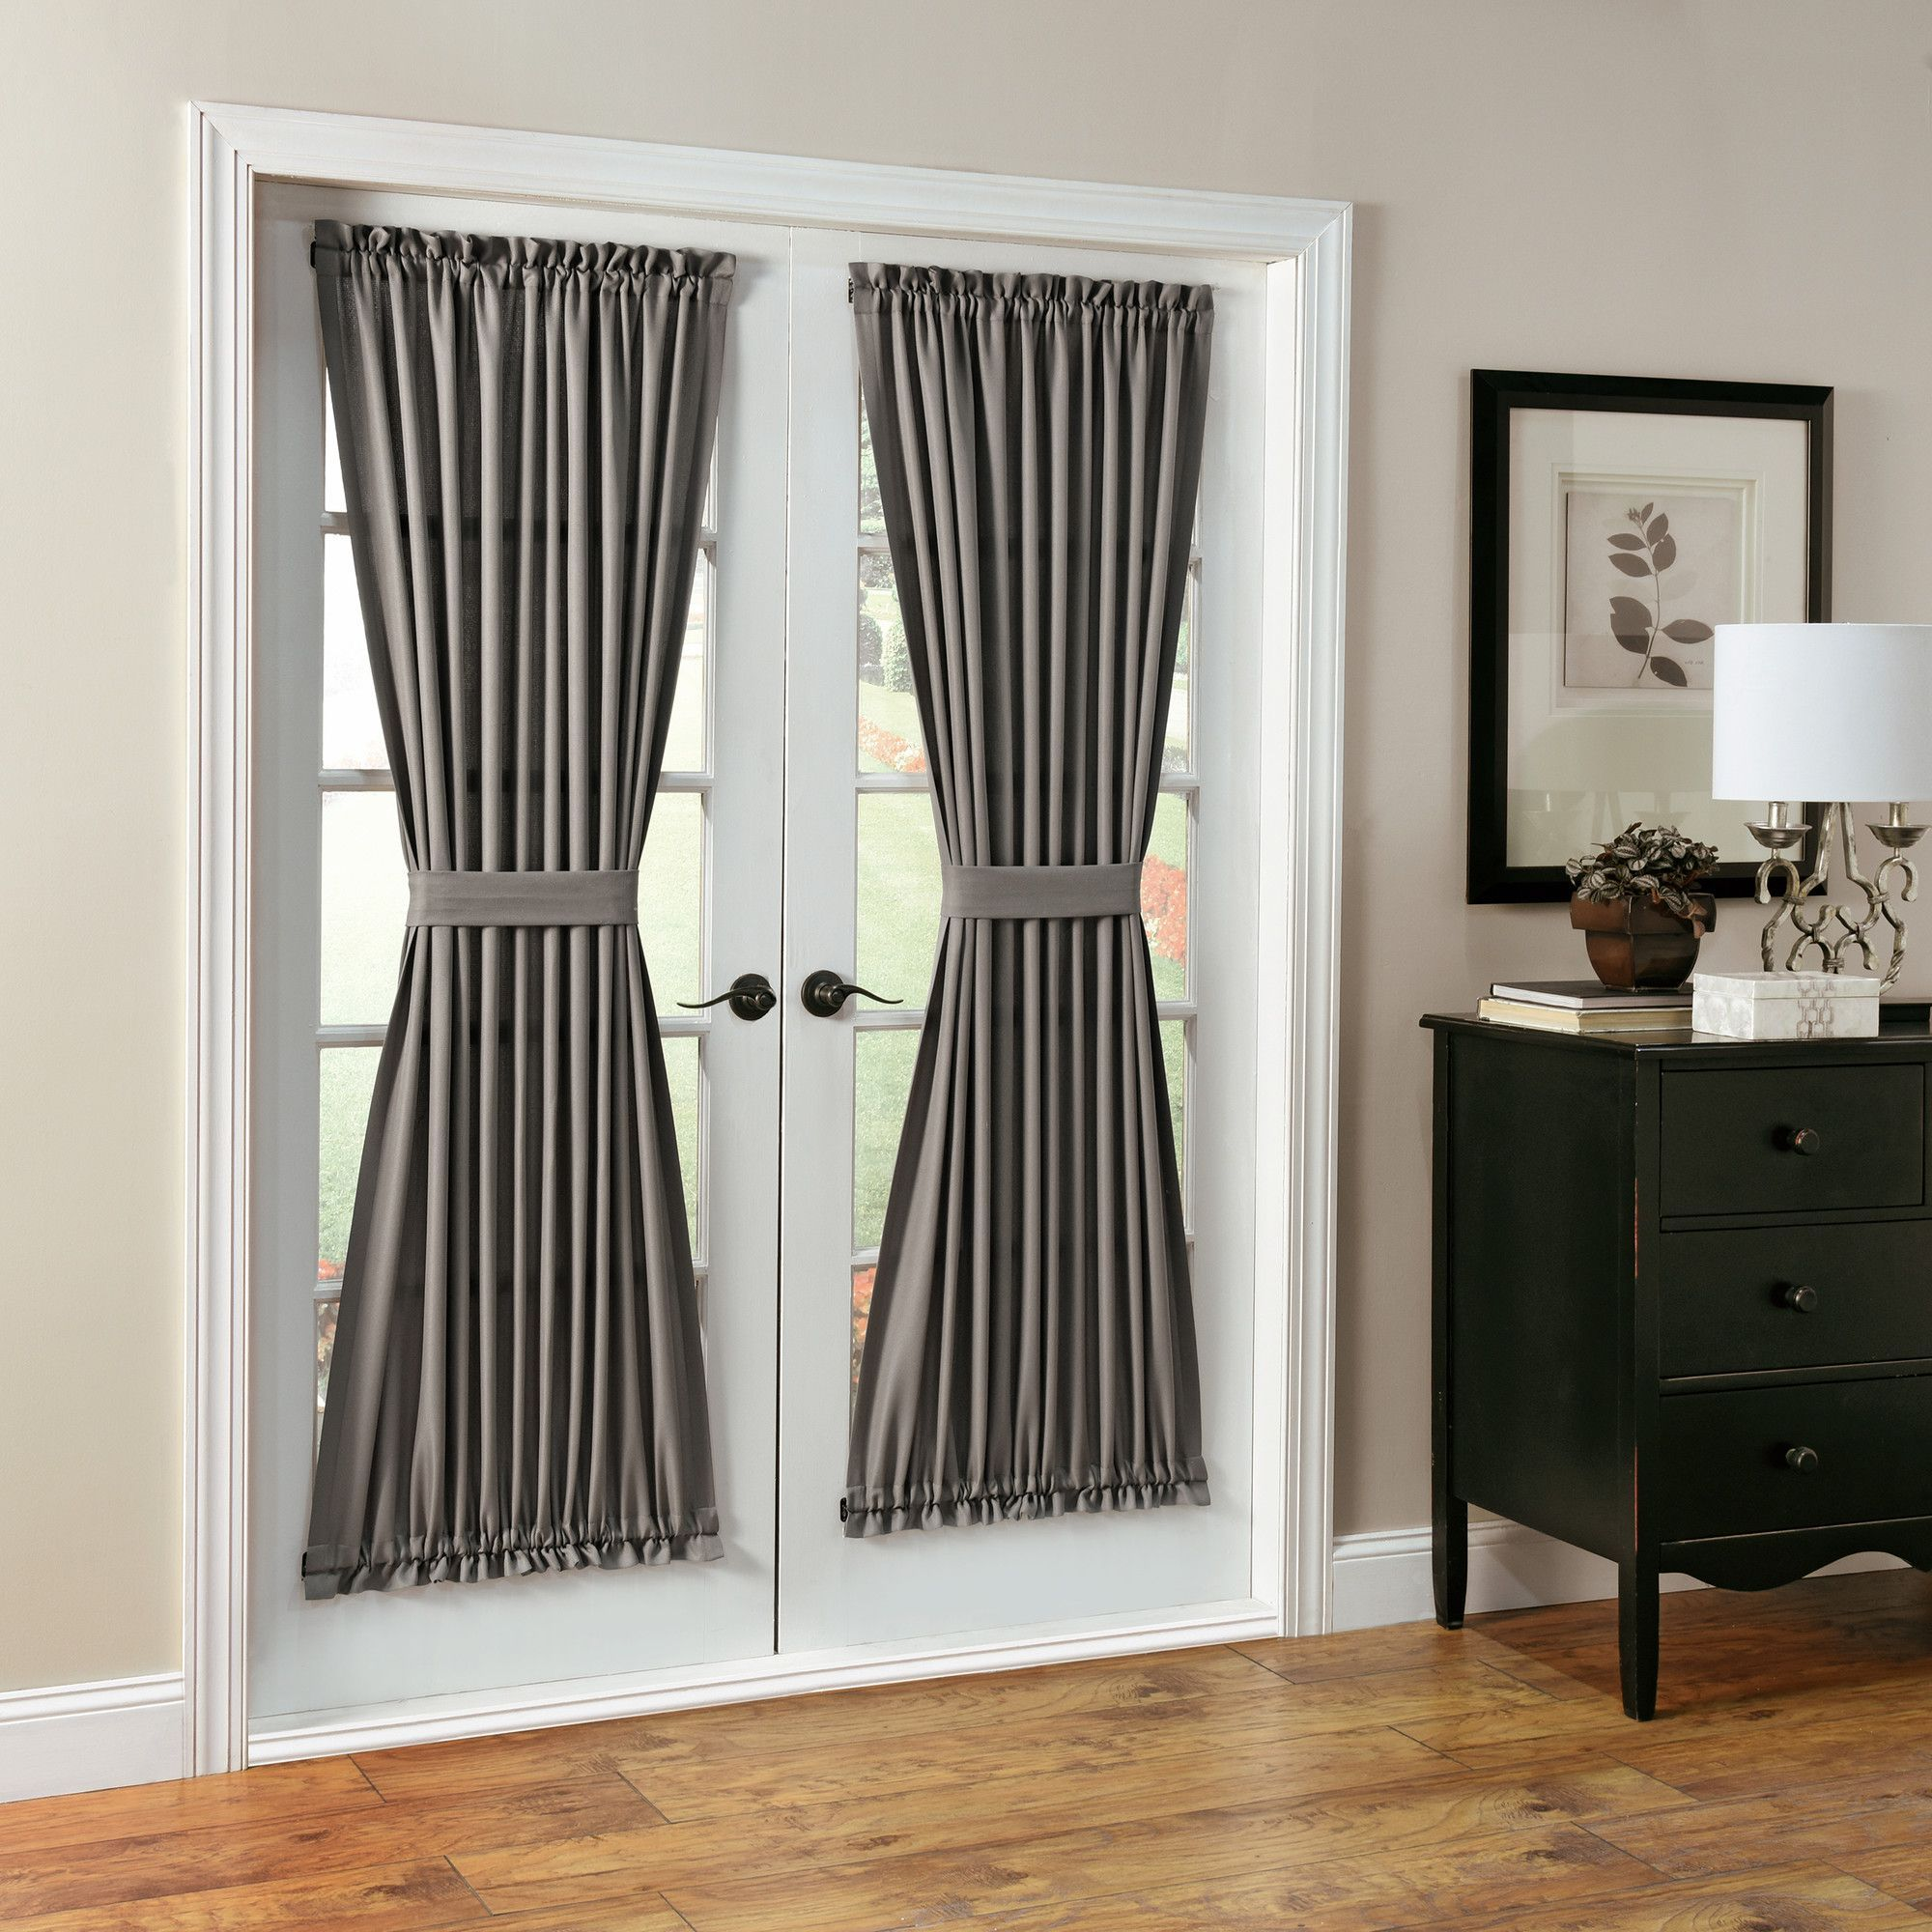 Features Casual woven fabric Fits patio French doors Sold